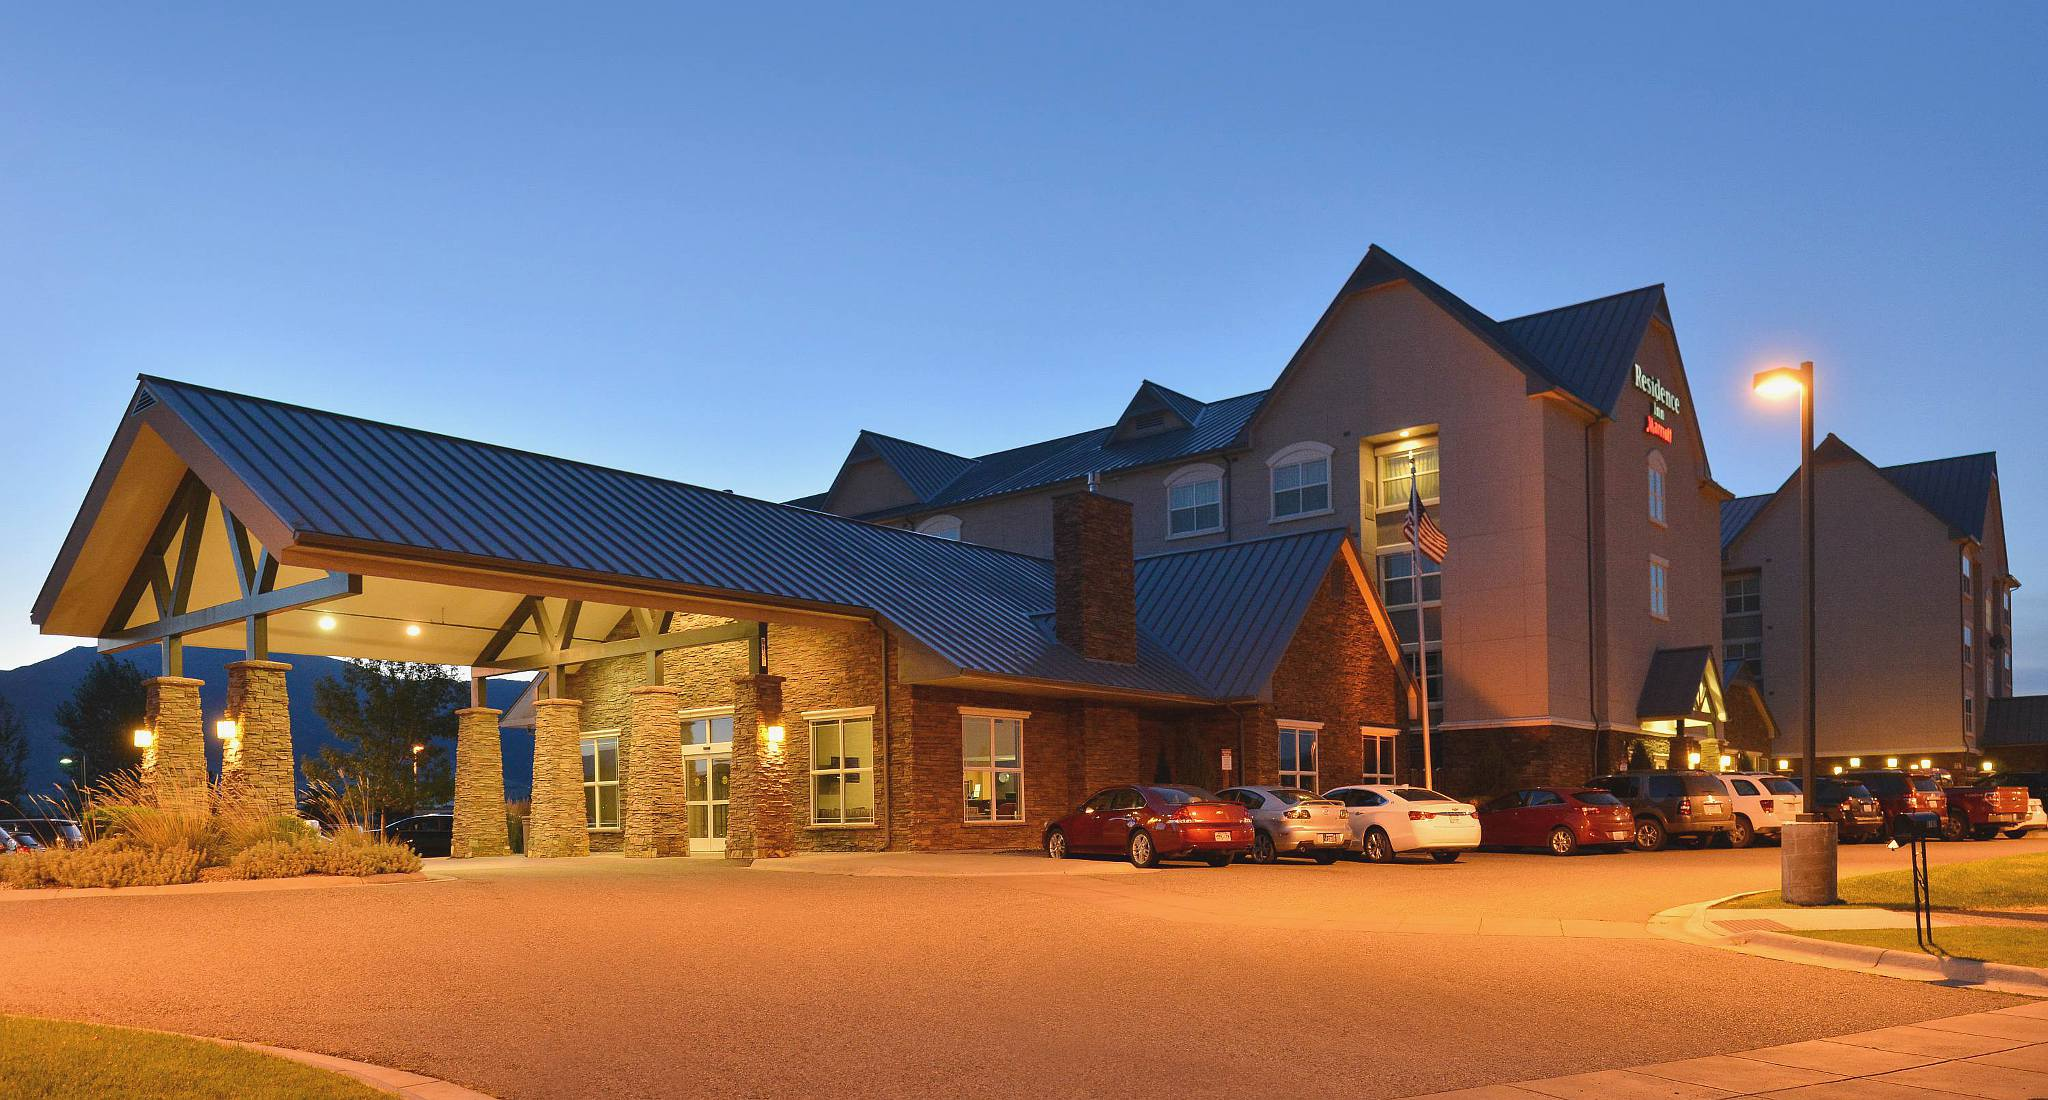 Bozeman Hotels Like Residence Inn by Marriott